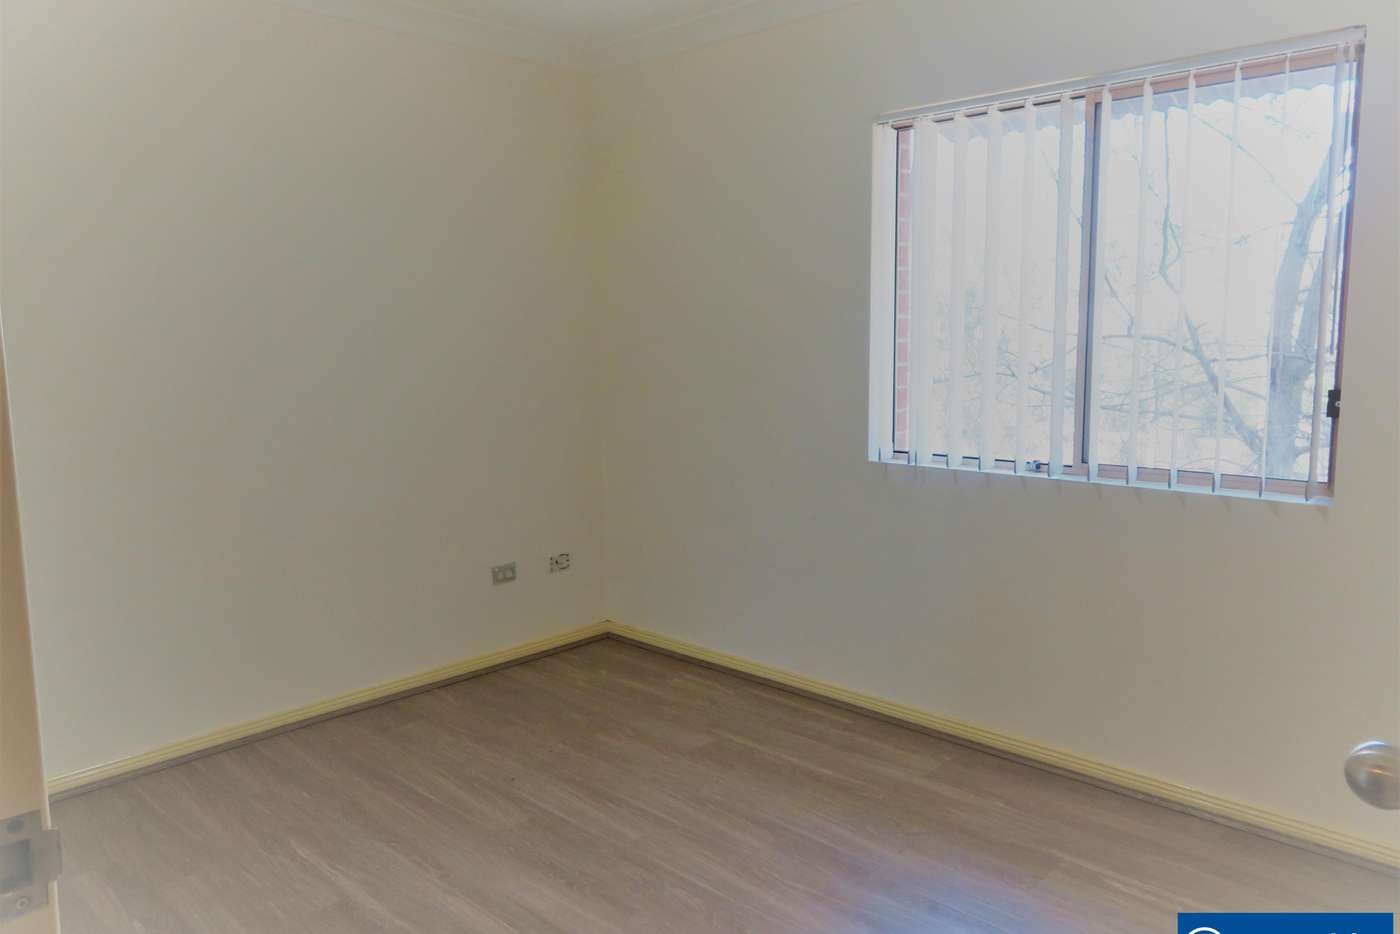 Sixth view of Homely unit listing, 49/2 Wentworth Avenue, Toongabbie NSW 2146